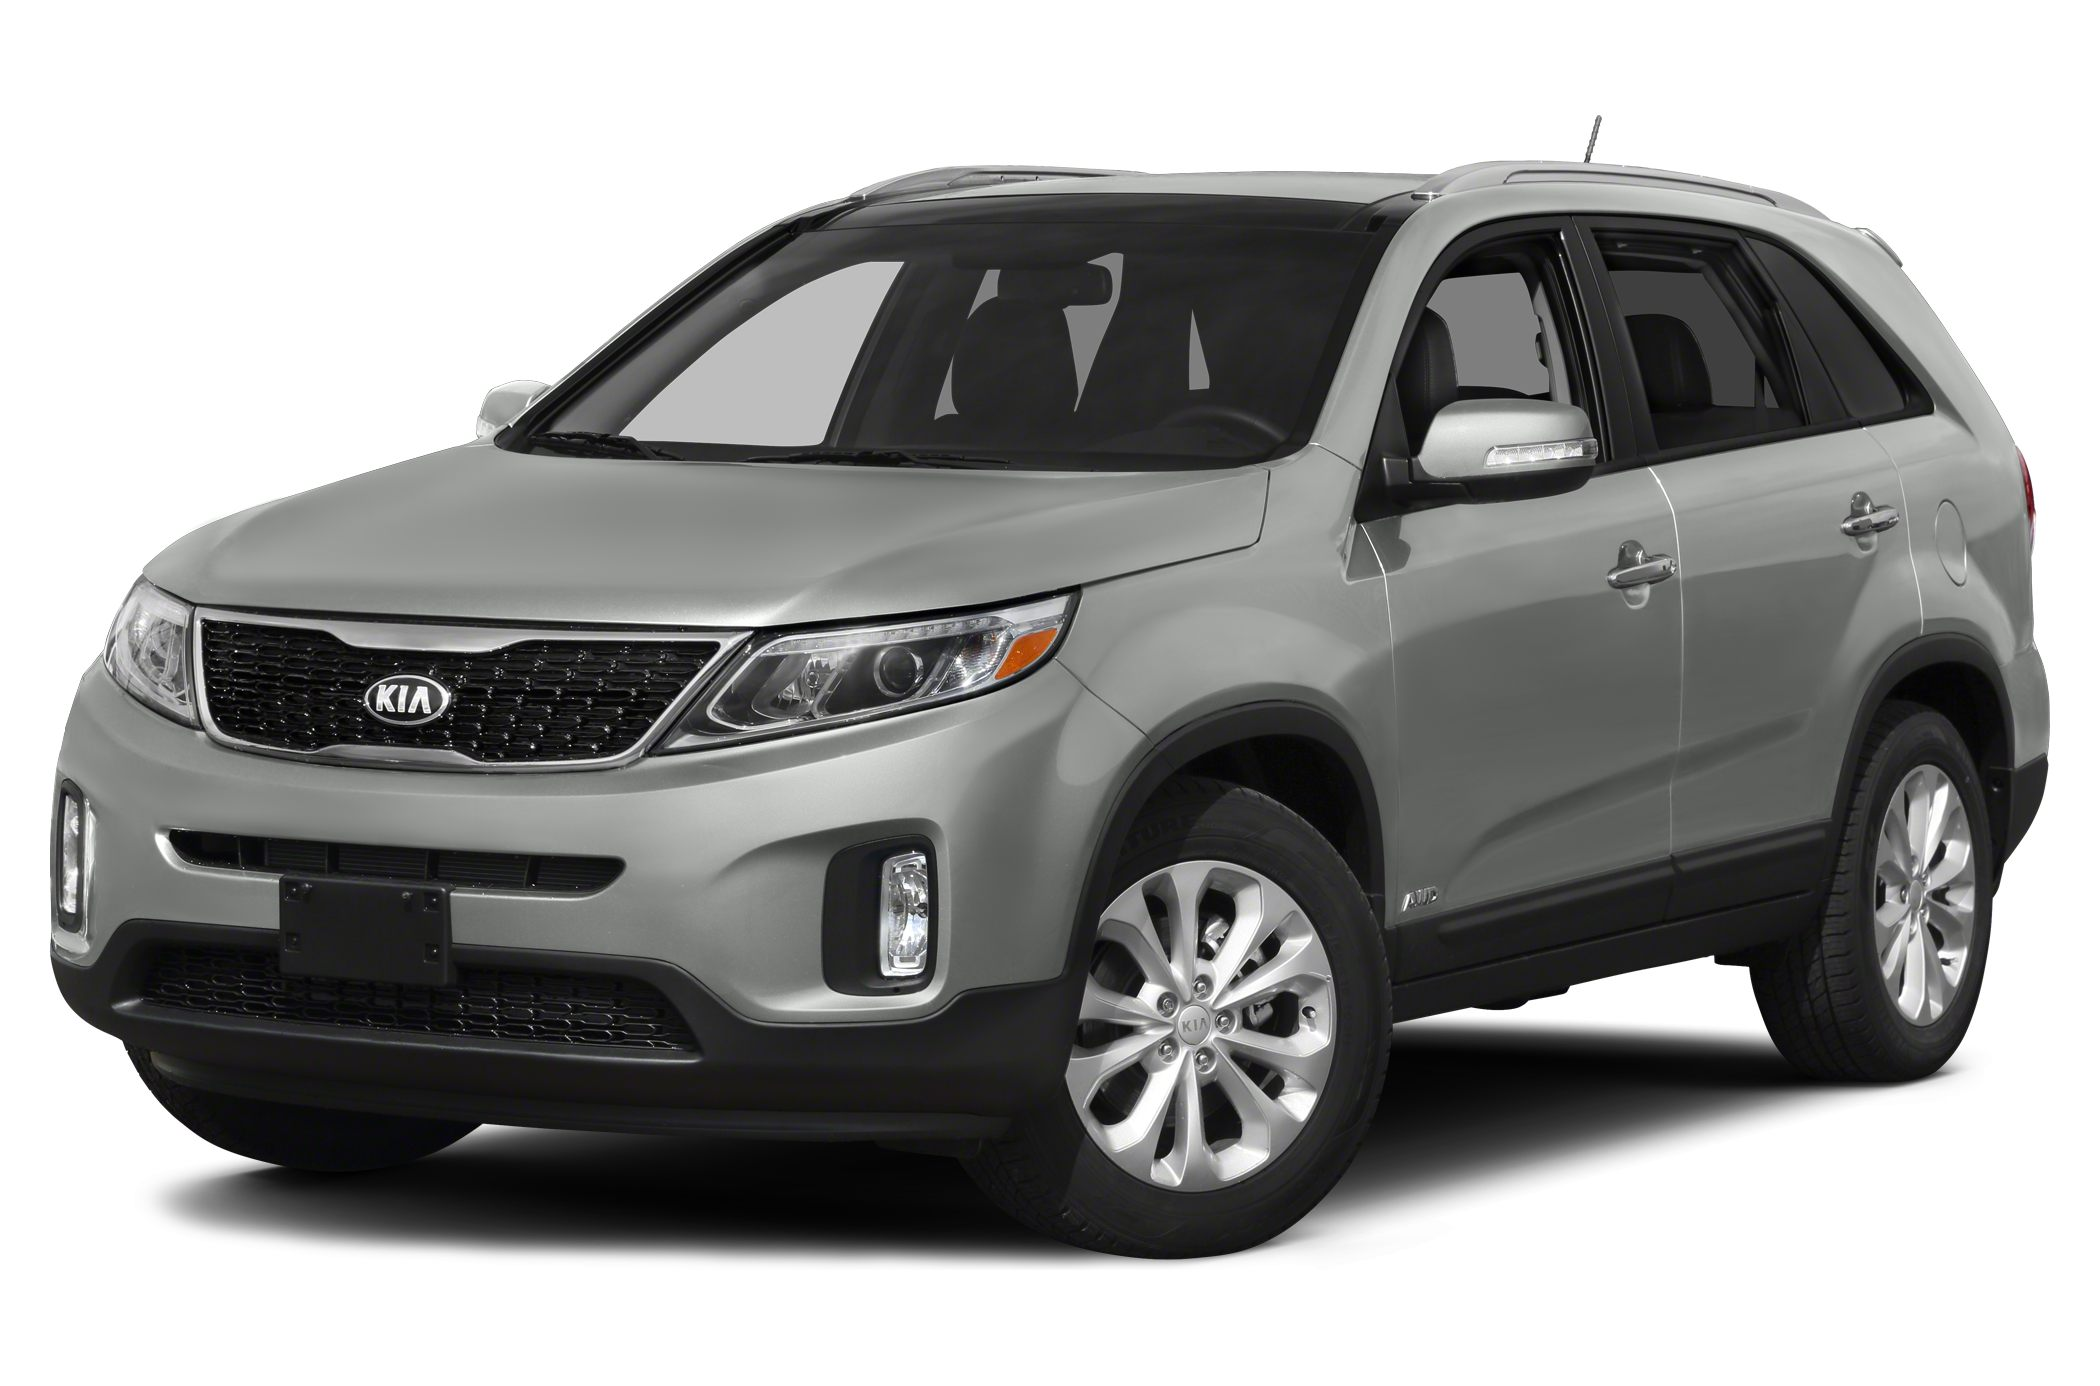 2015 Kia Sorento LX SUV for sale in Watertown for $32,645 with 0 miles.